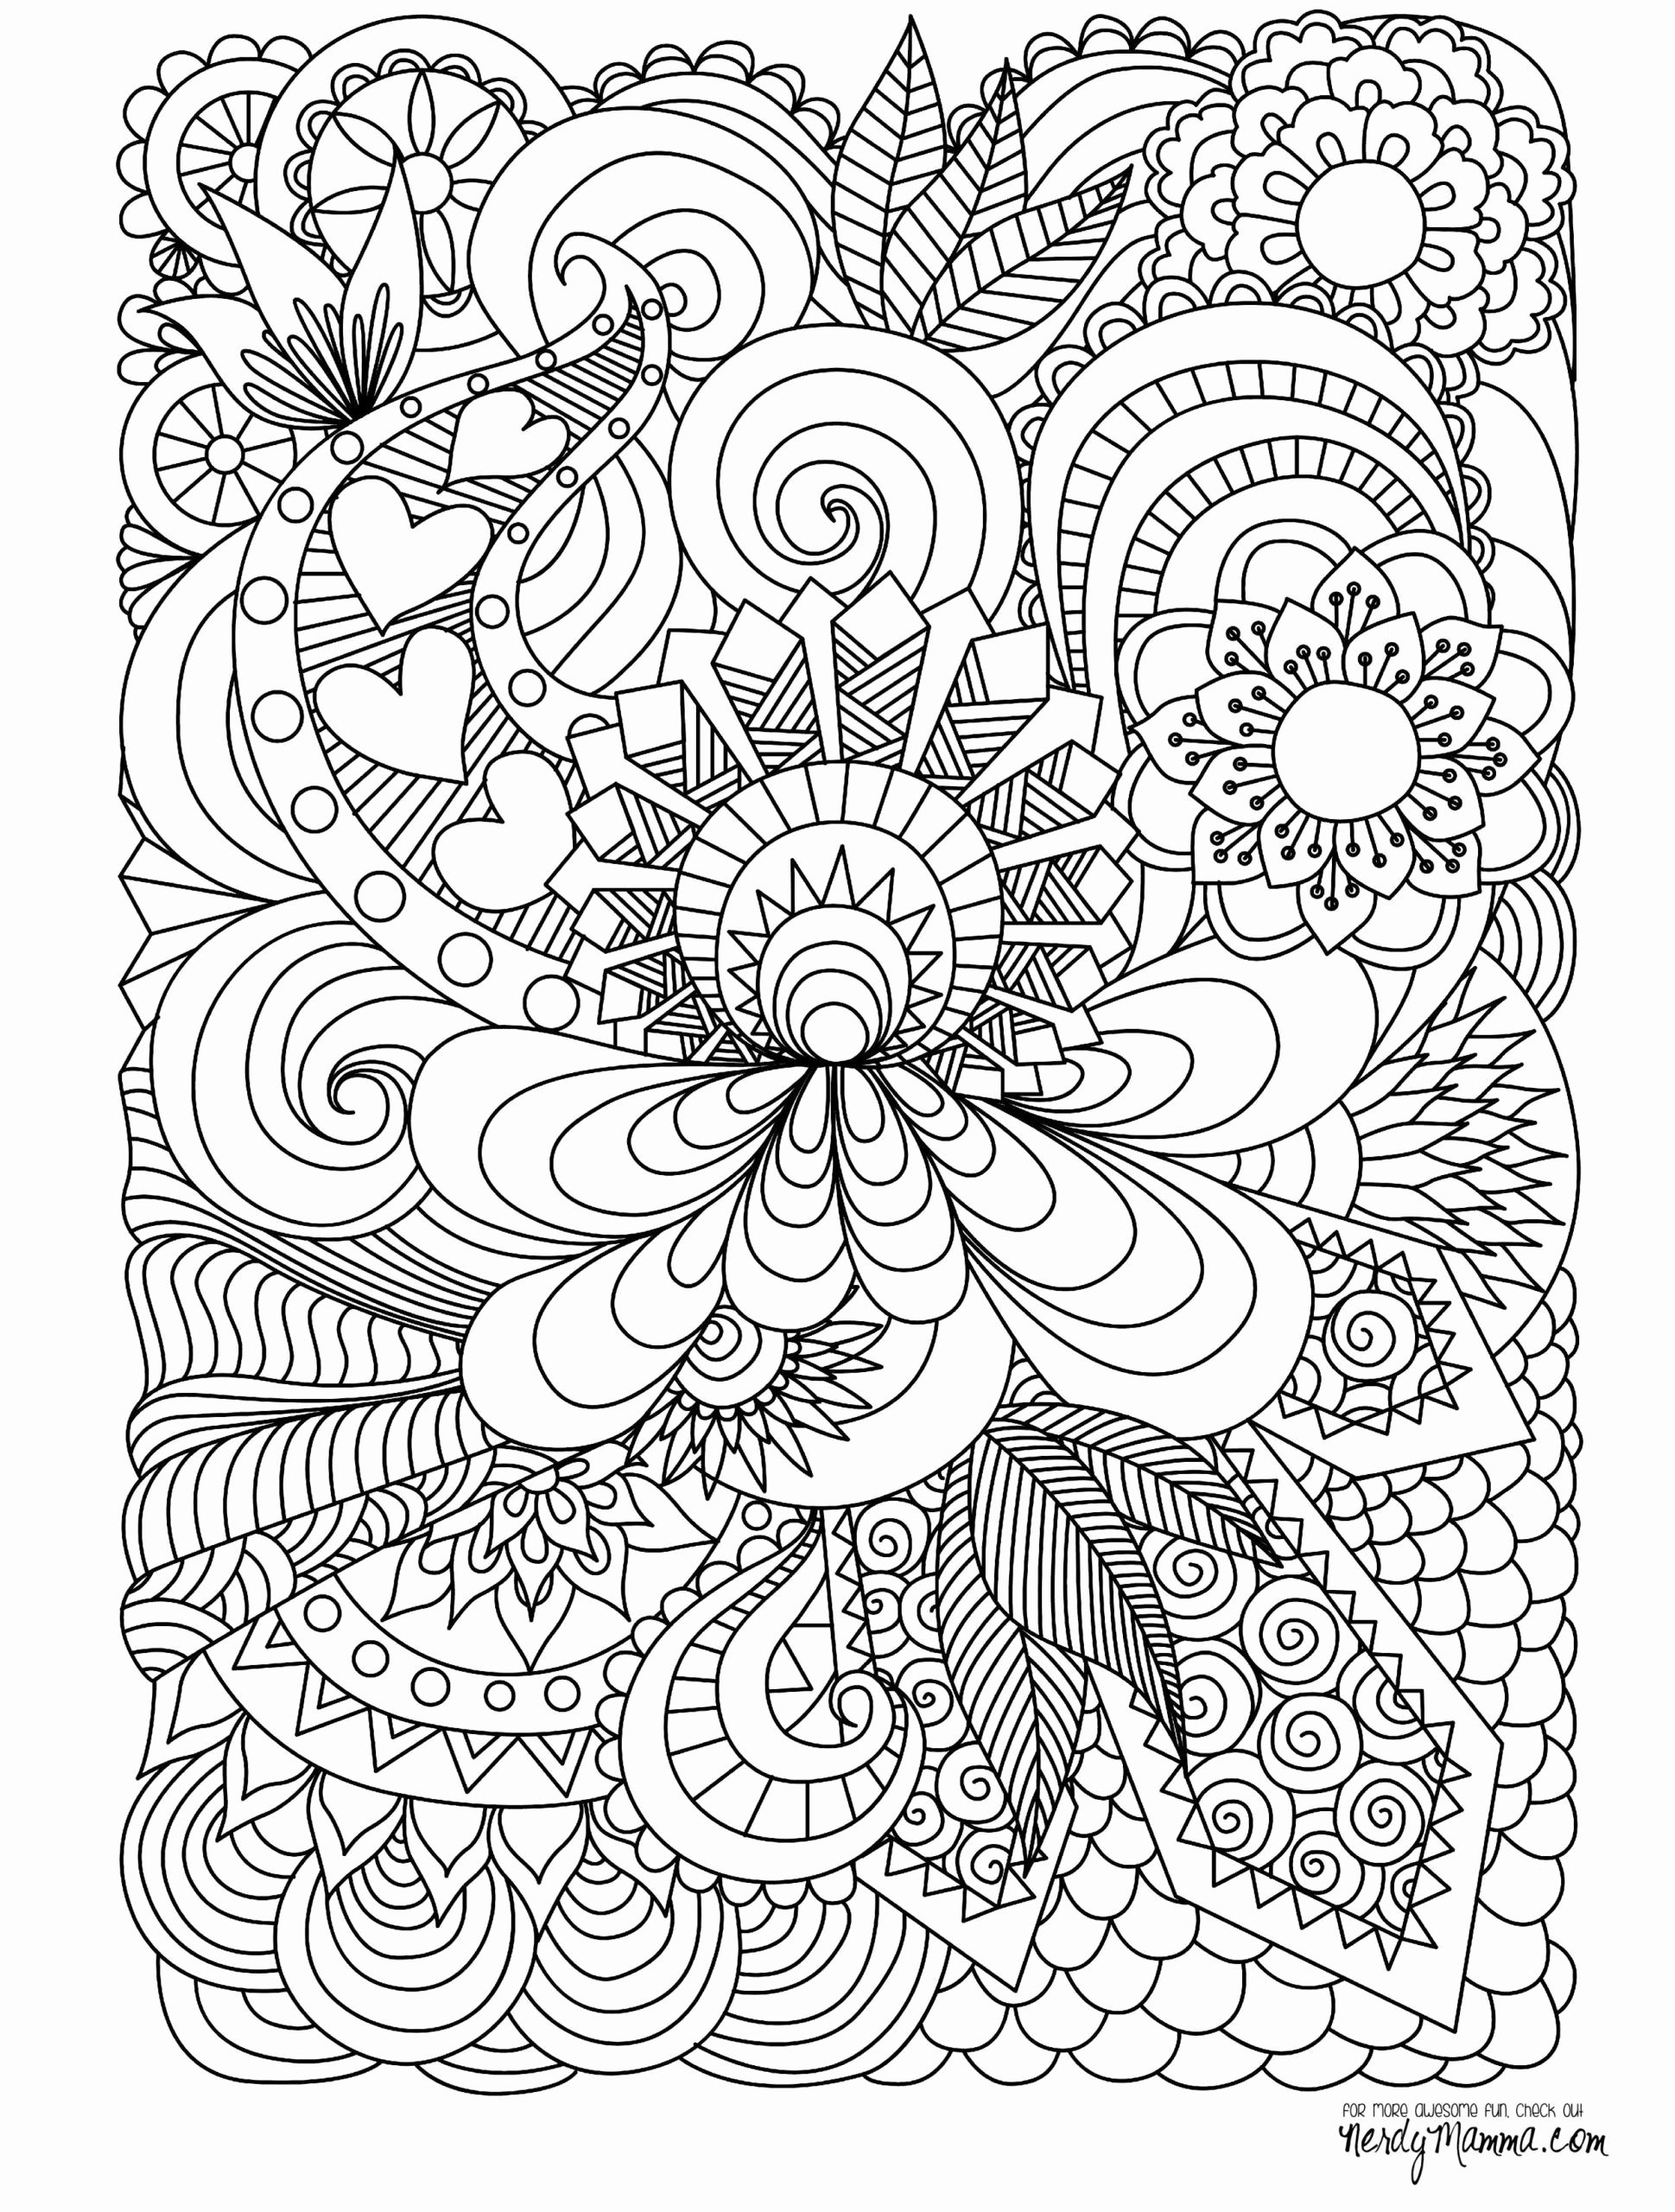 Hard Coloring Pages For Kids 8 In 2020 Adult Coloring Book Pages Mandala Coloring Pages Printable Adult Coloring Pages